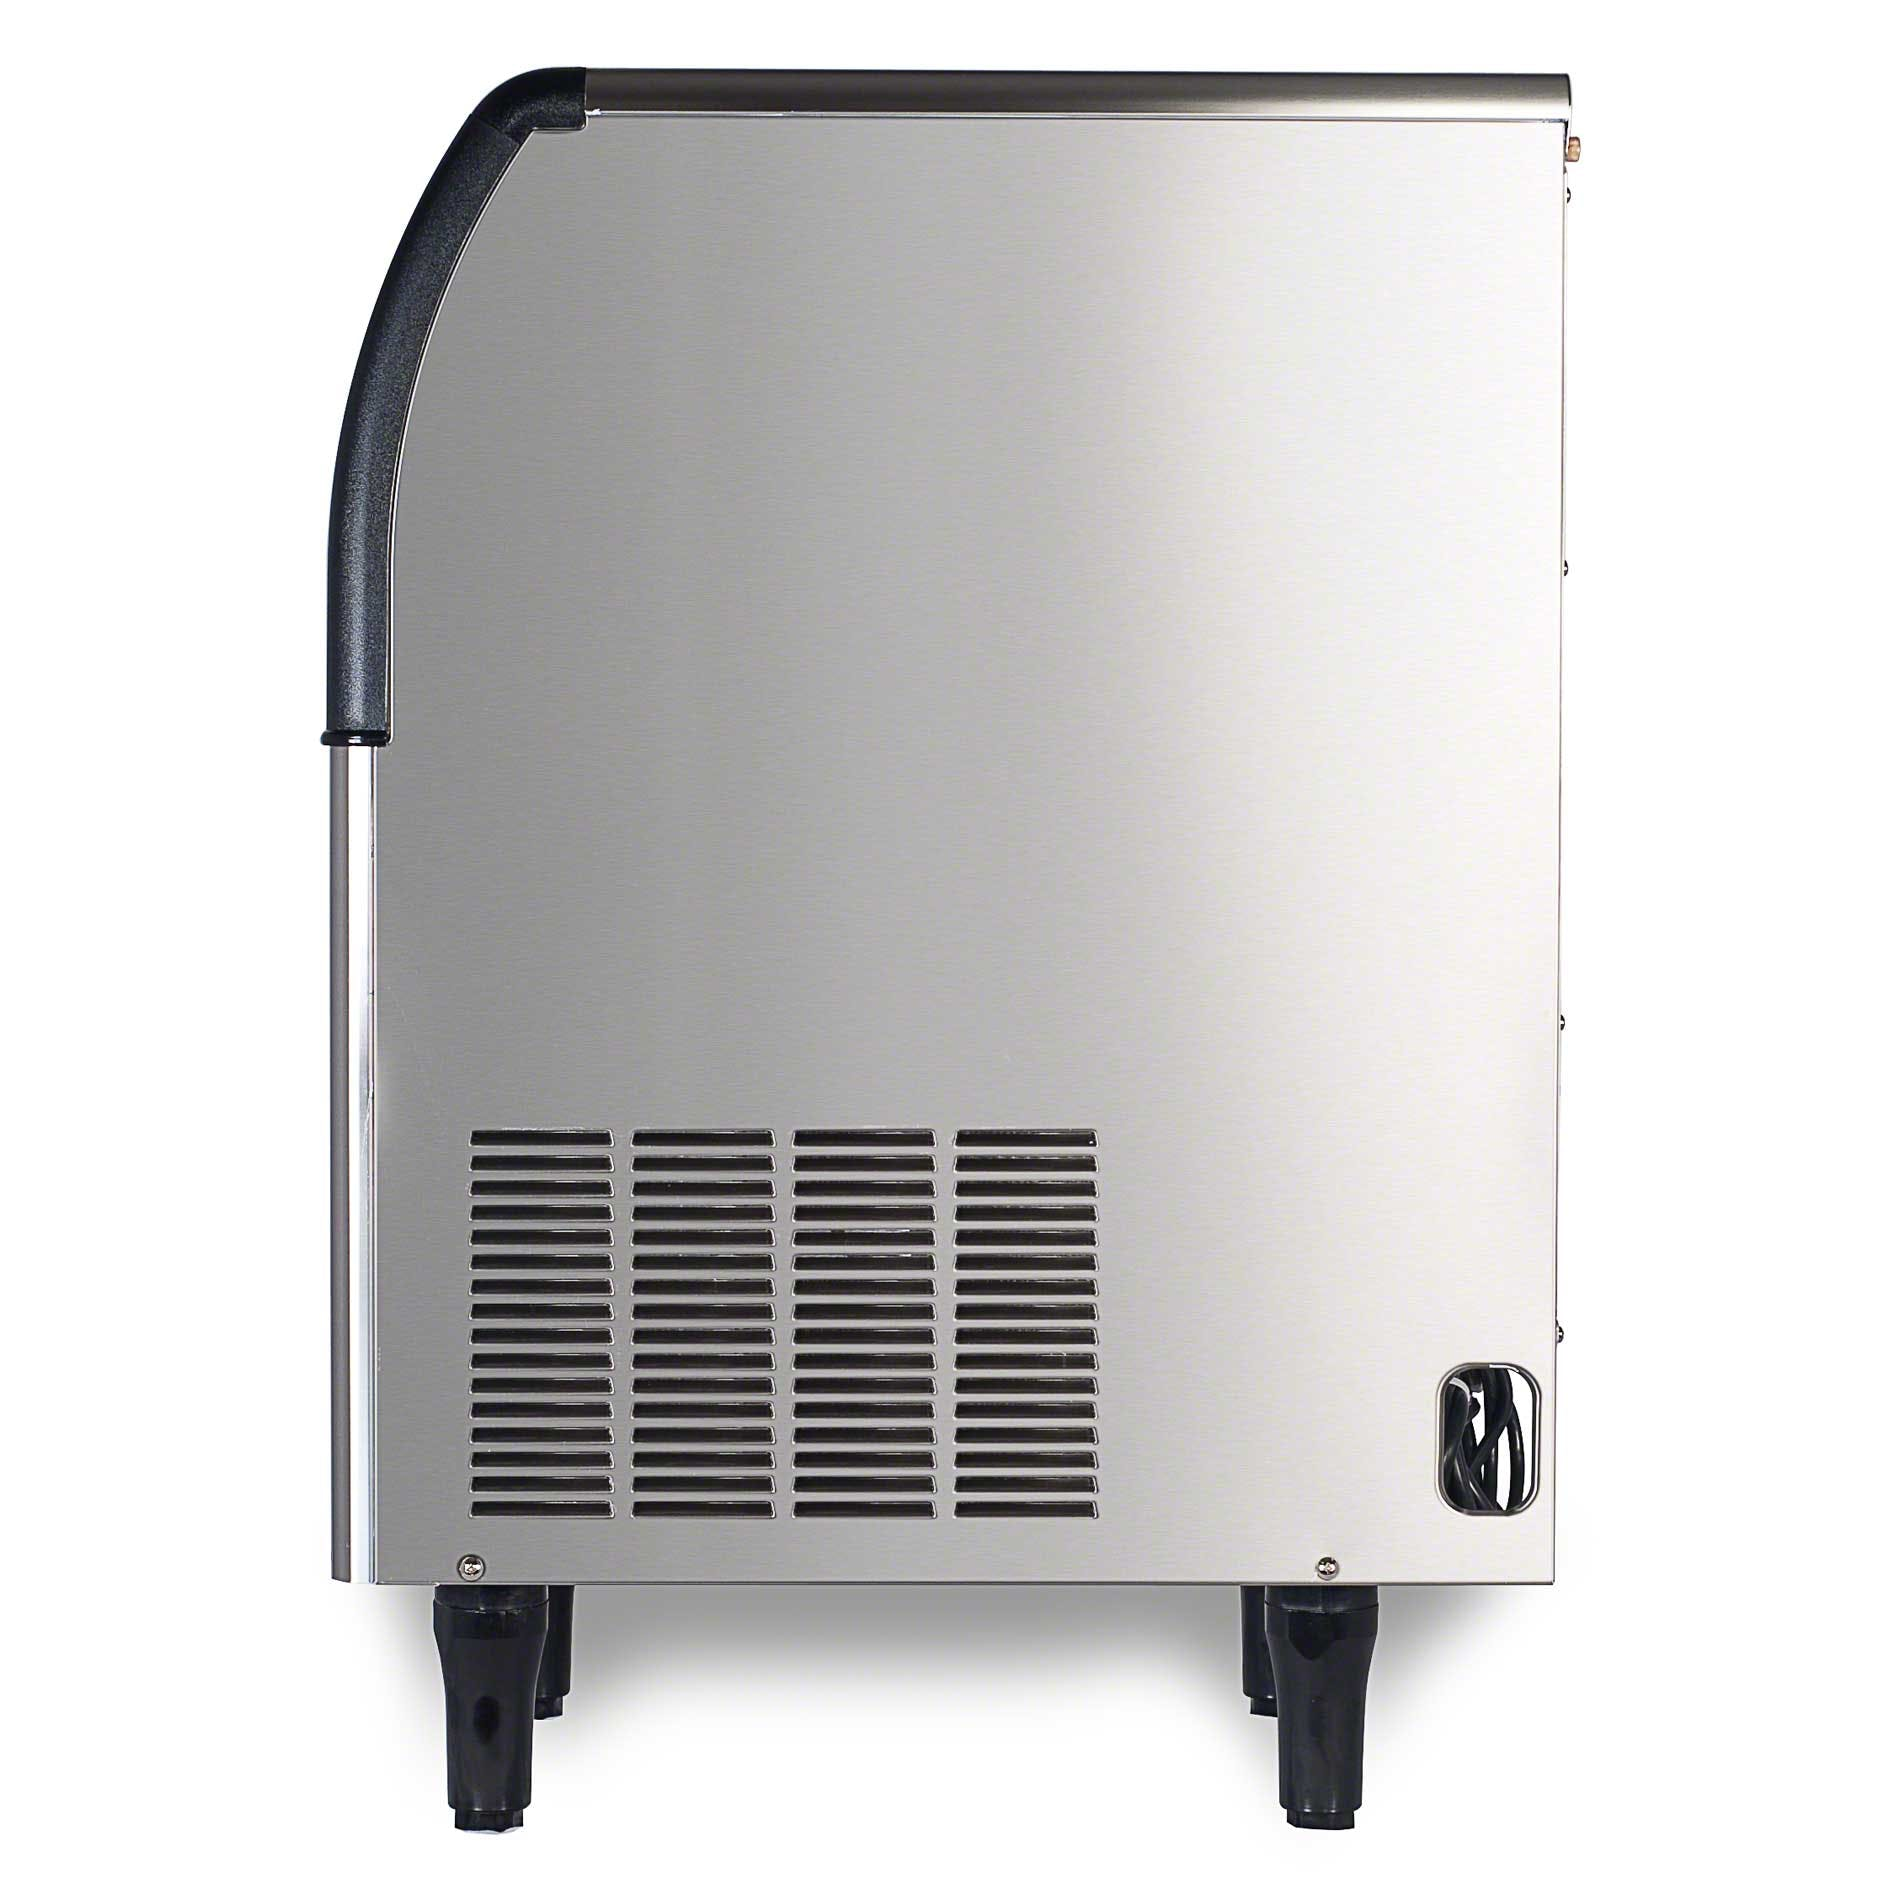 Ice-O-Matic - ICEU070 84 lb Self-Contained Cube Ice Machine - sold by Food Service Warehouse